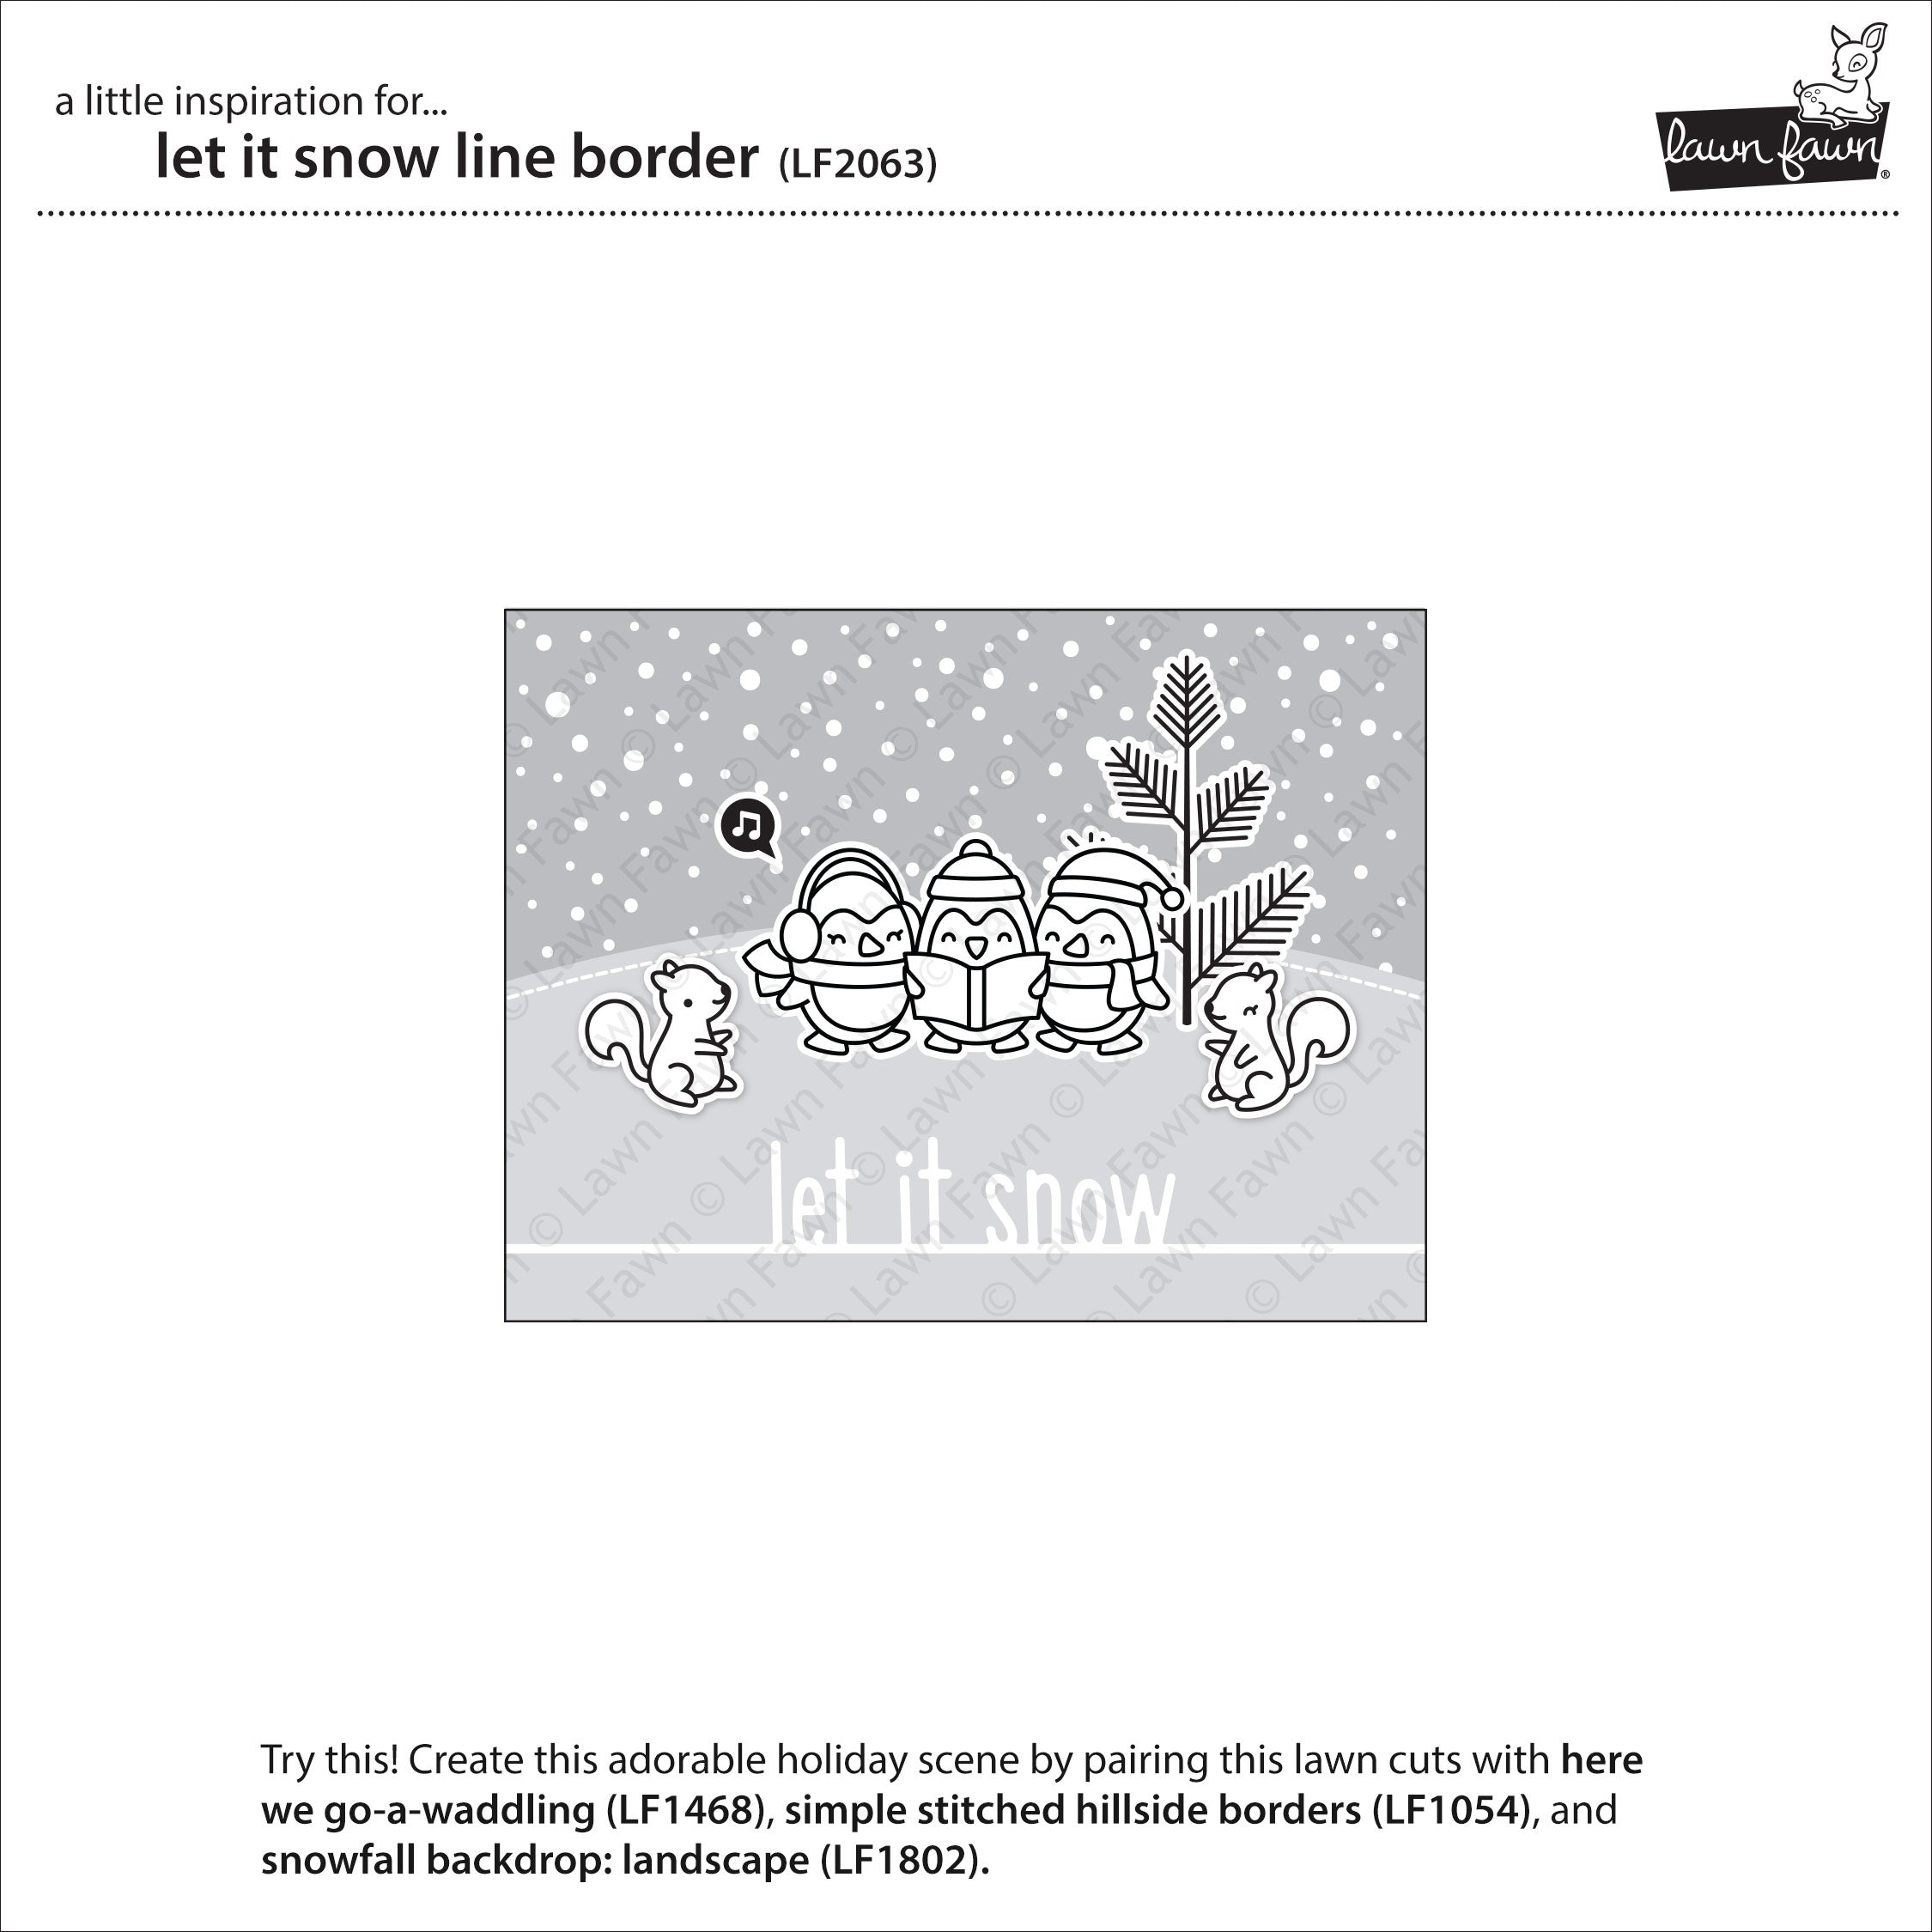 let it snow line border